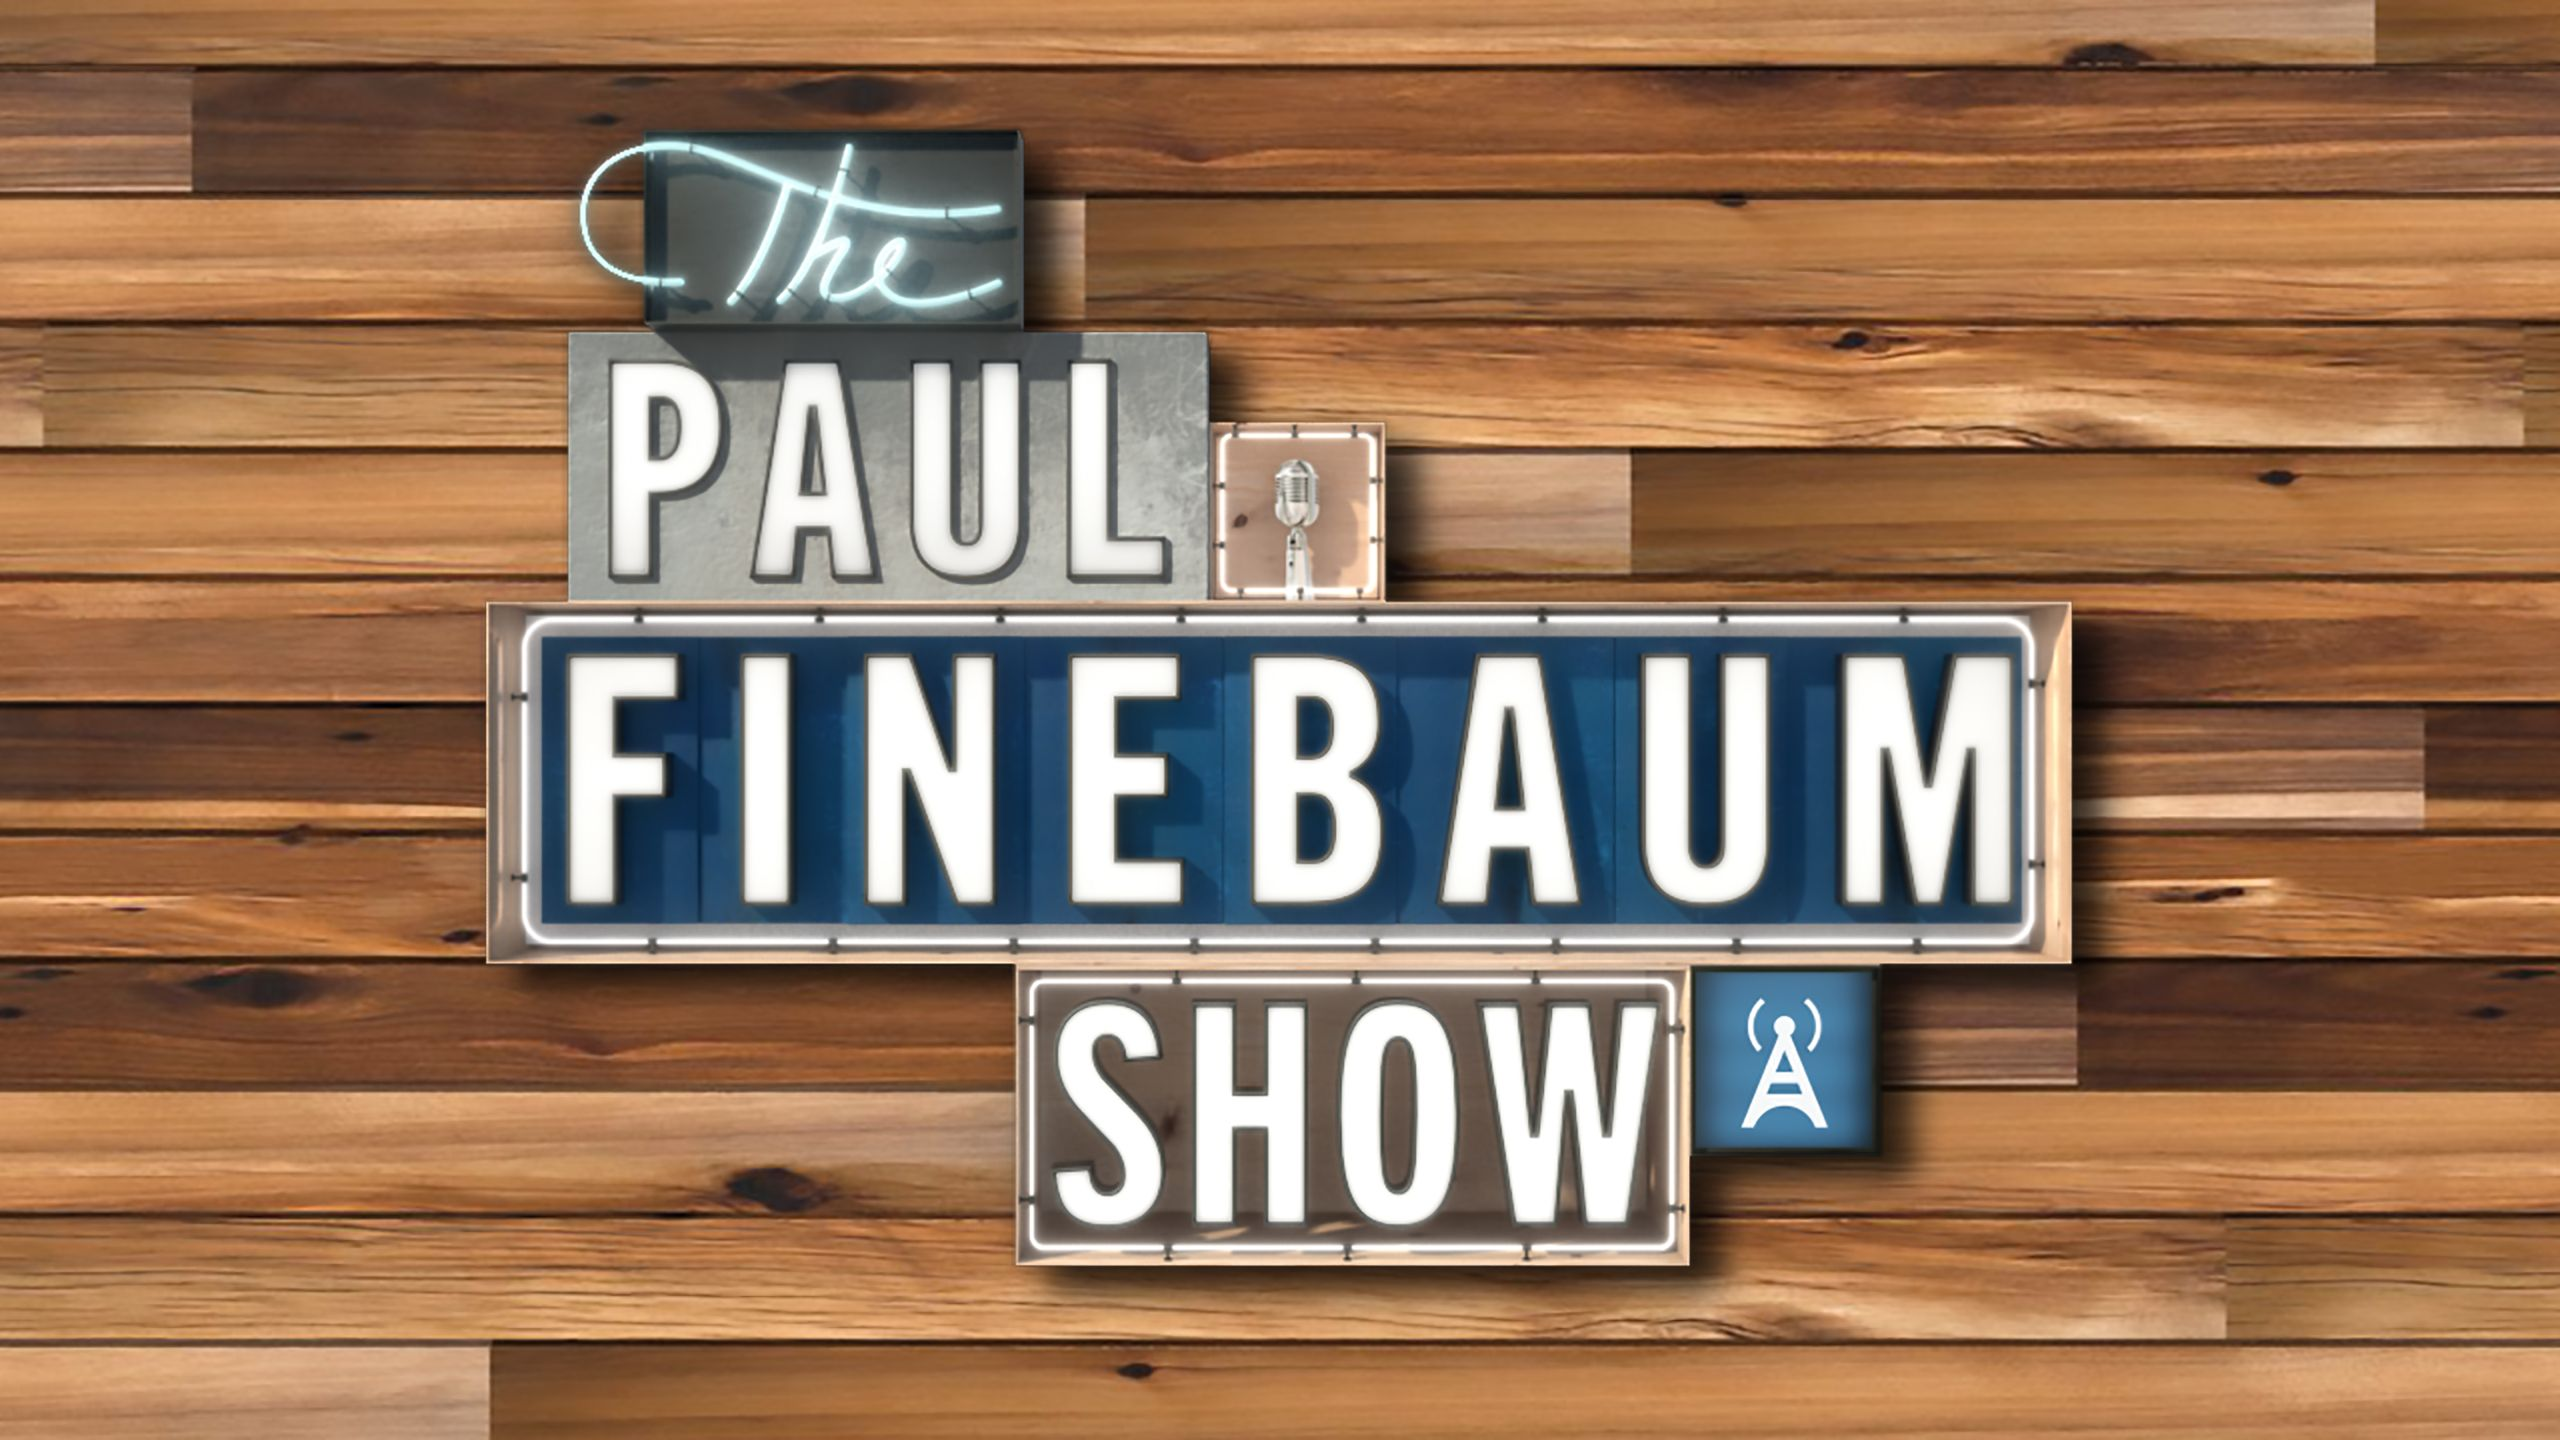 Fri, 11/24 - The Paul Finebaum Show Presented by Johnsonville